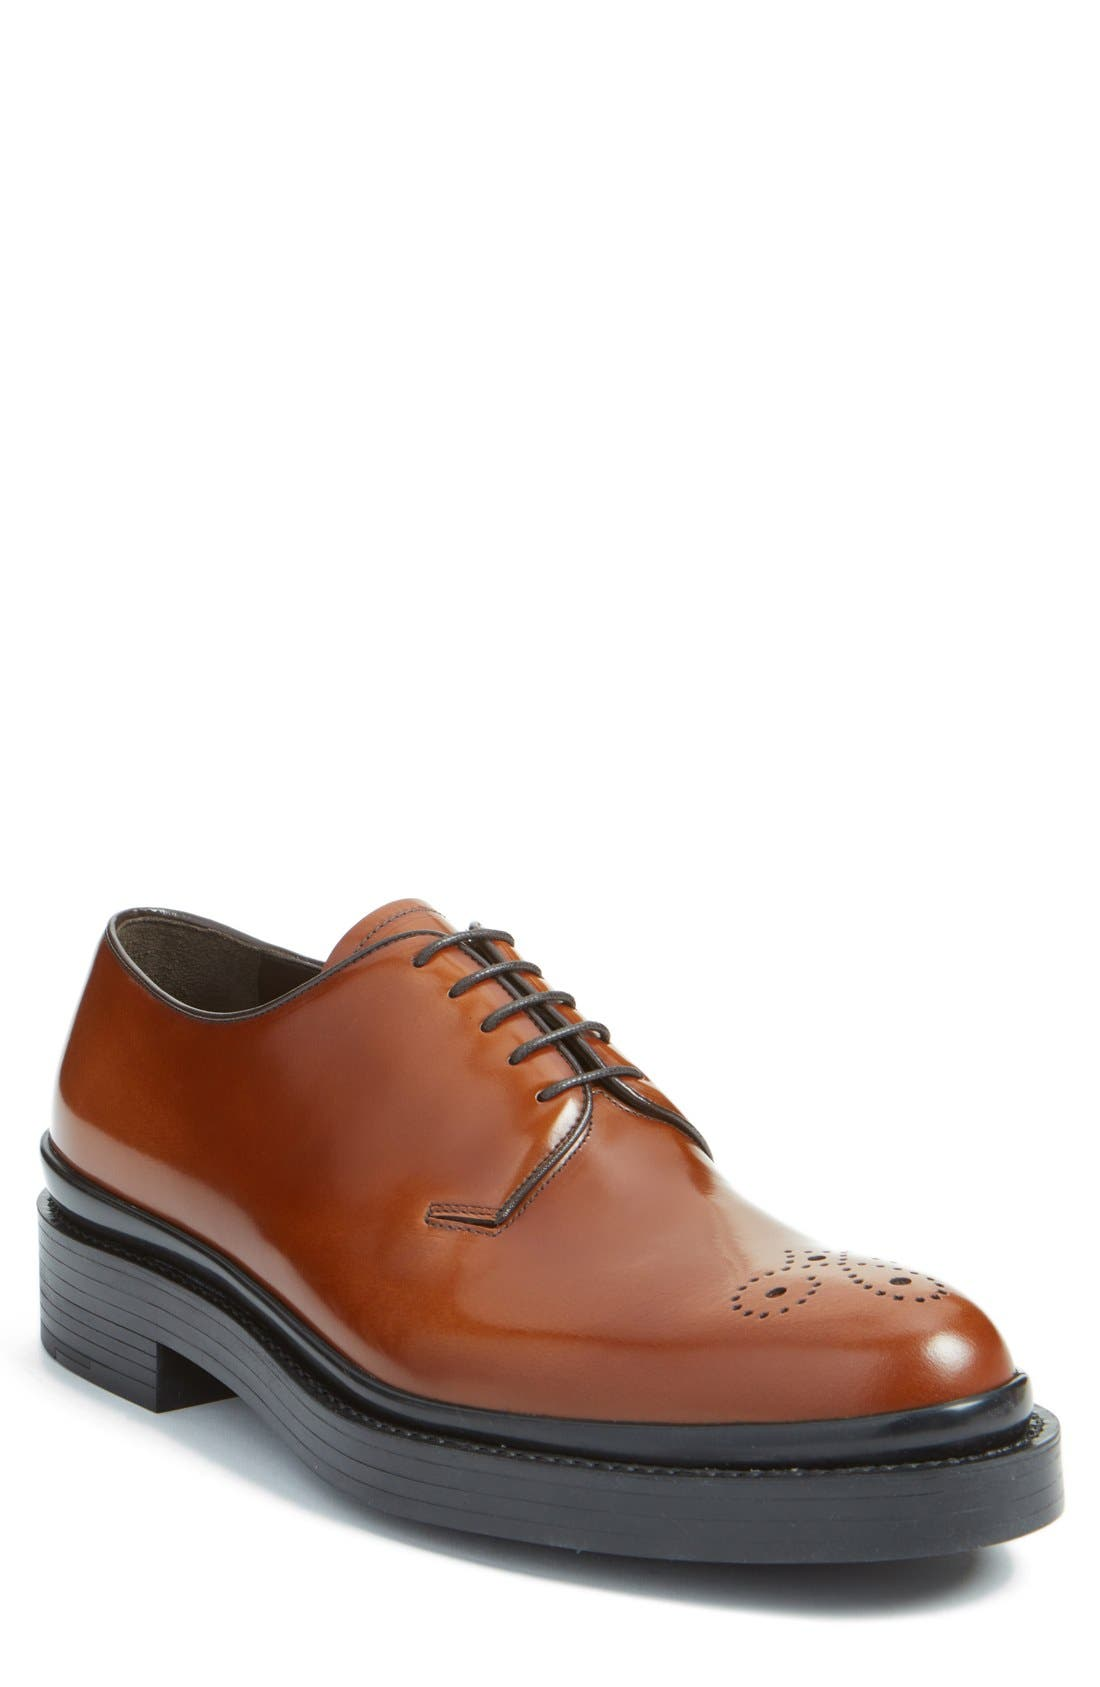 Medallion Toe Derby,                         Main,                         color, Tabacco/ Nero Leather